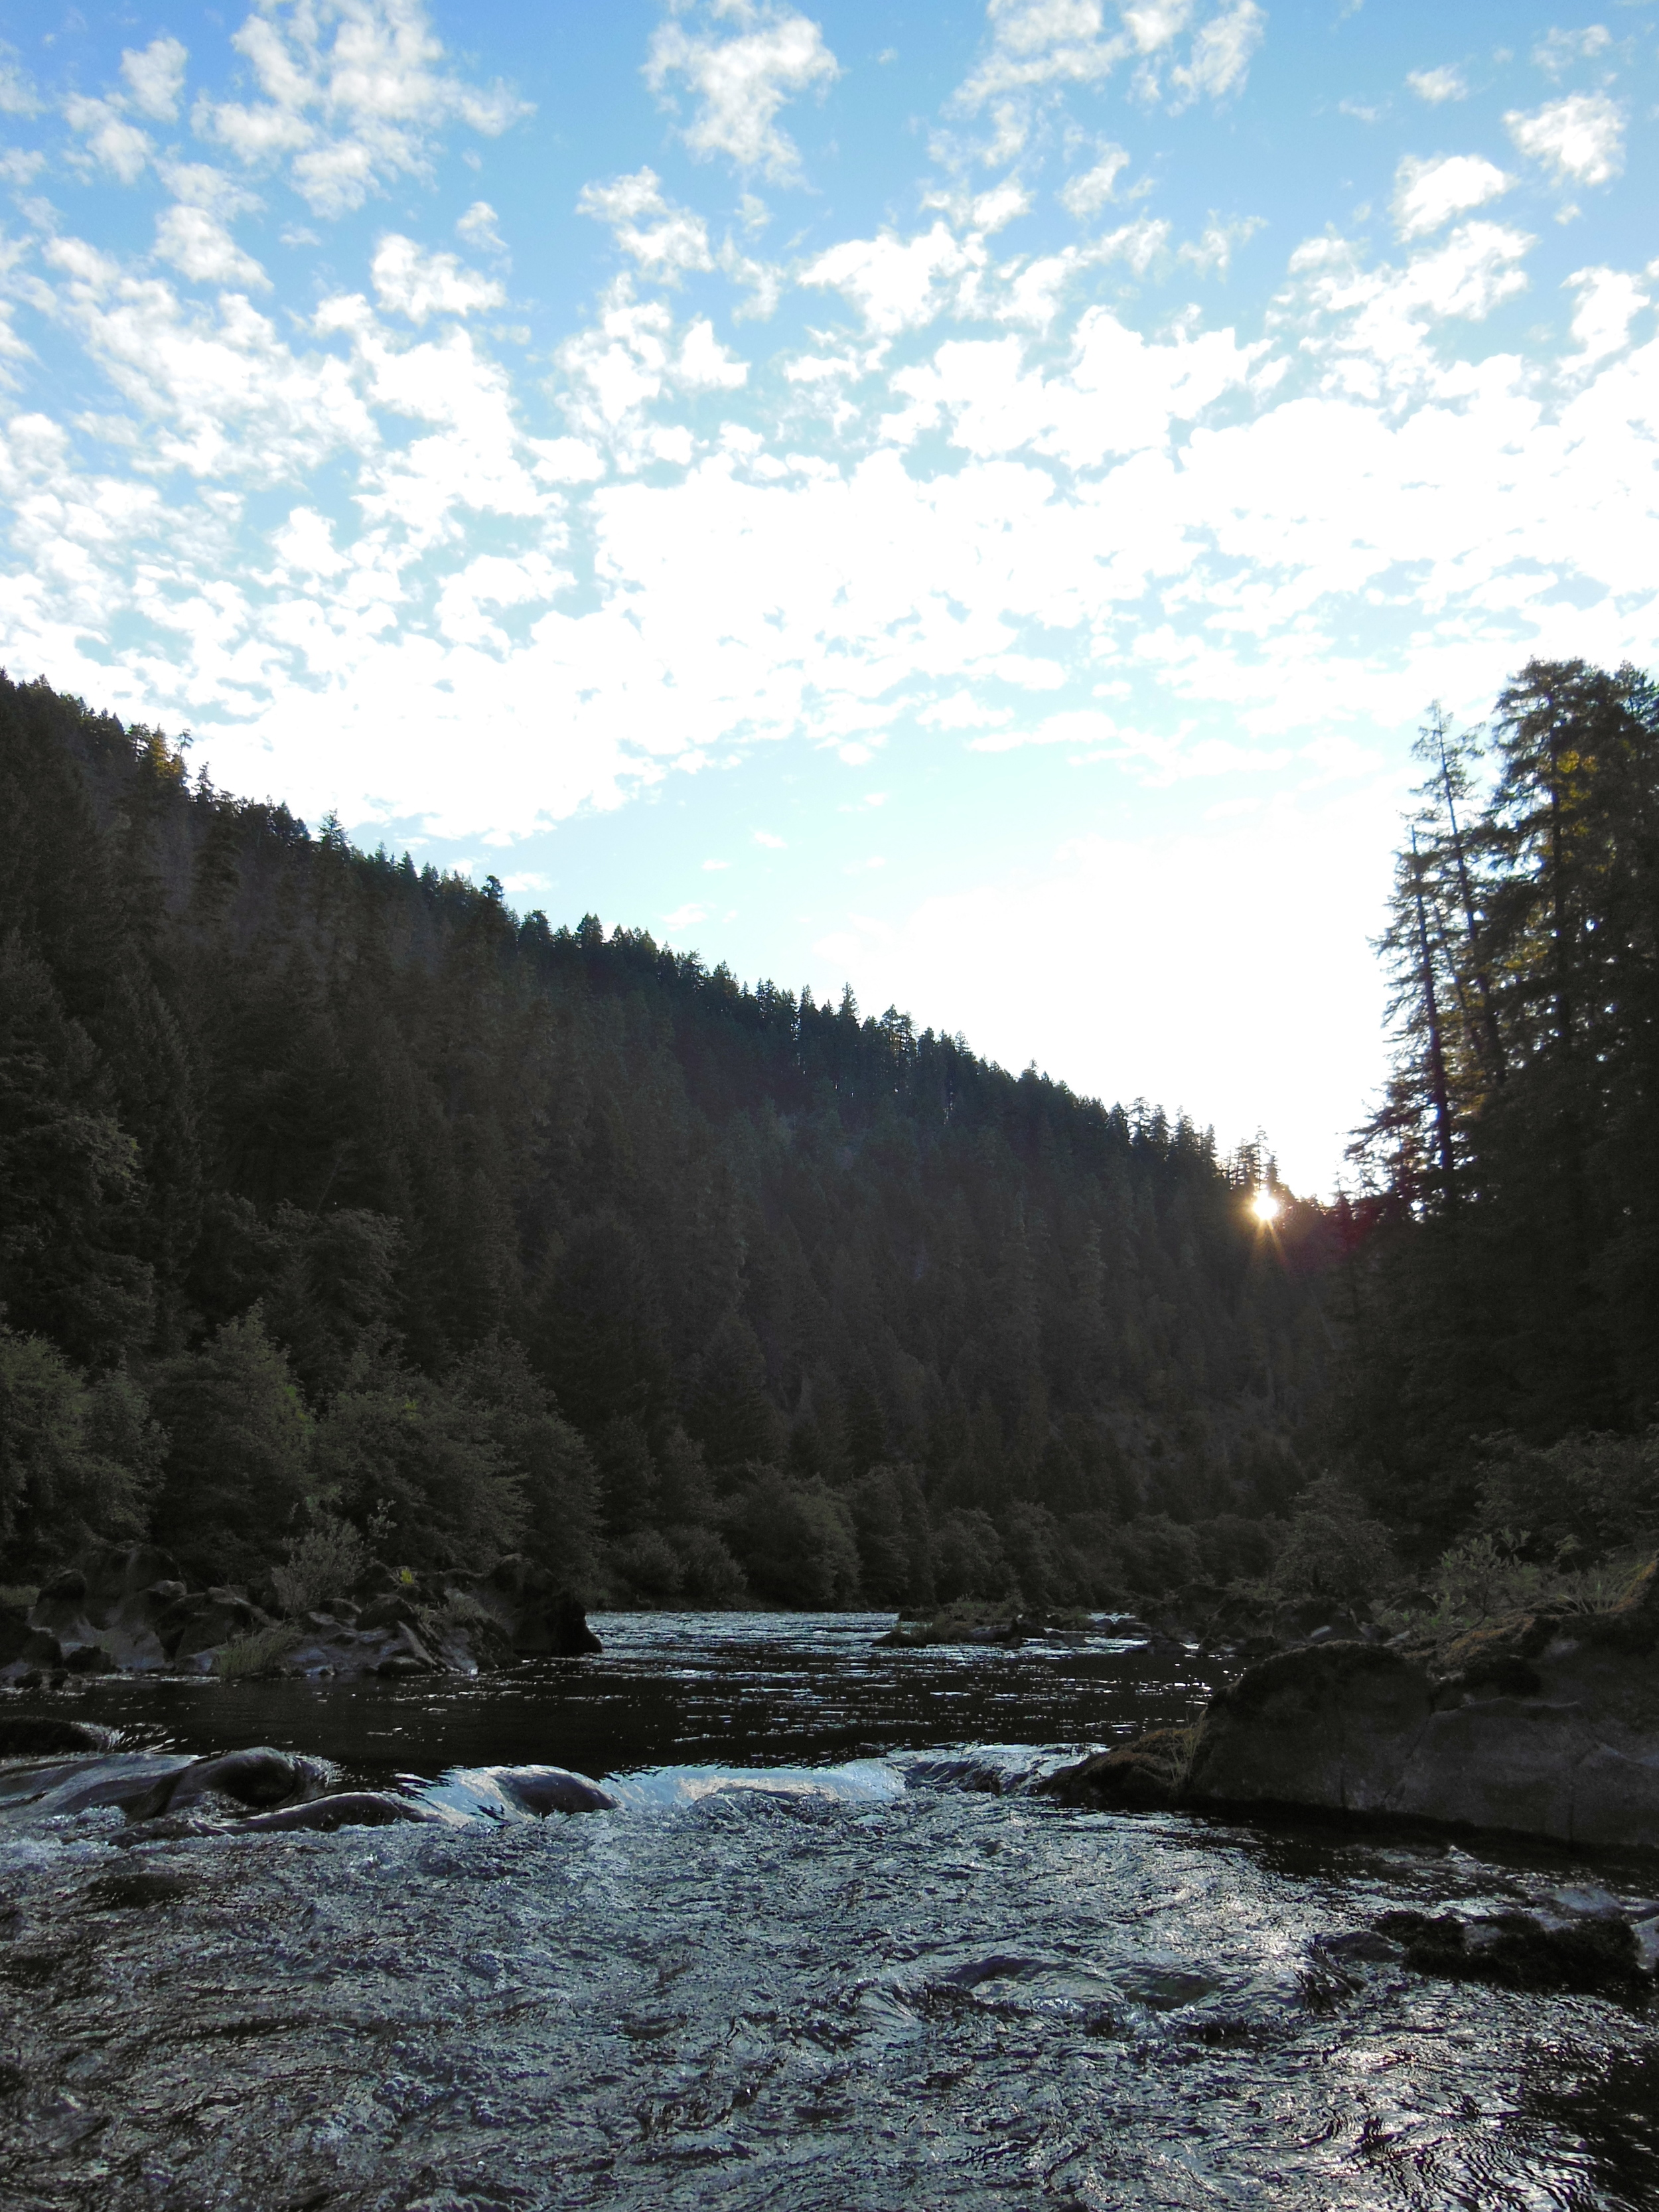 Guided fly fishing for steelhead on Oregon's legendary North Umpqua